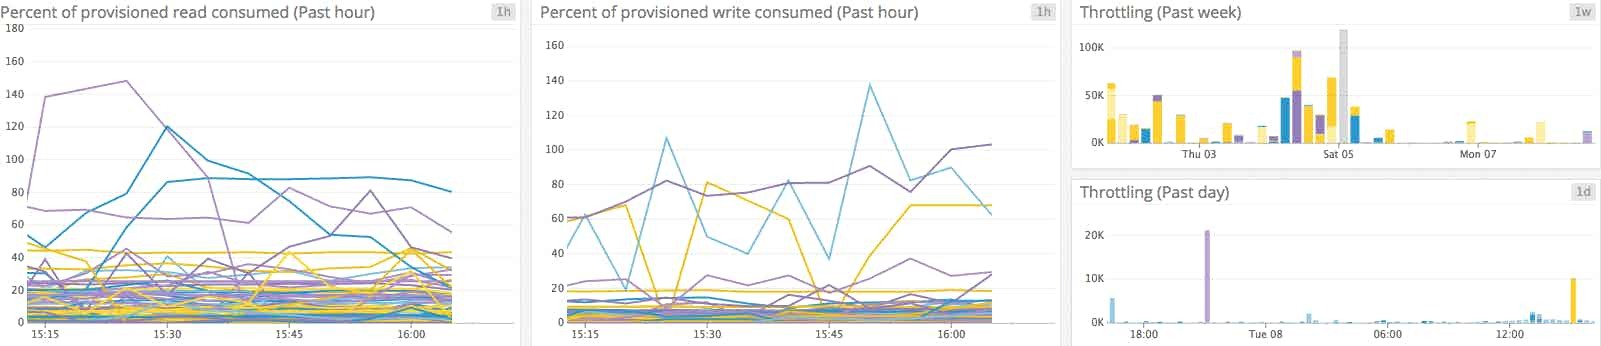 Consumed throughput and throttling graphs